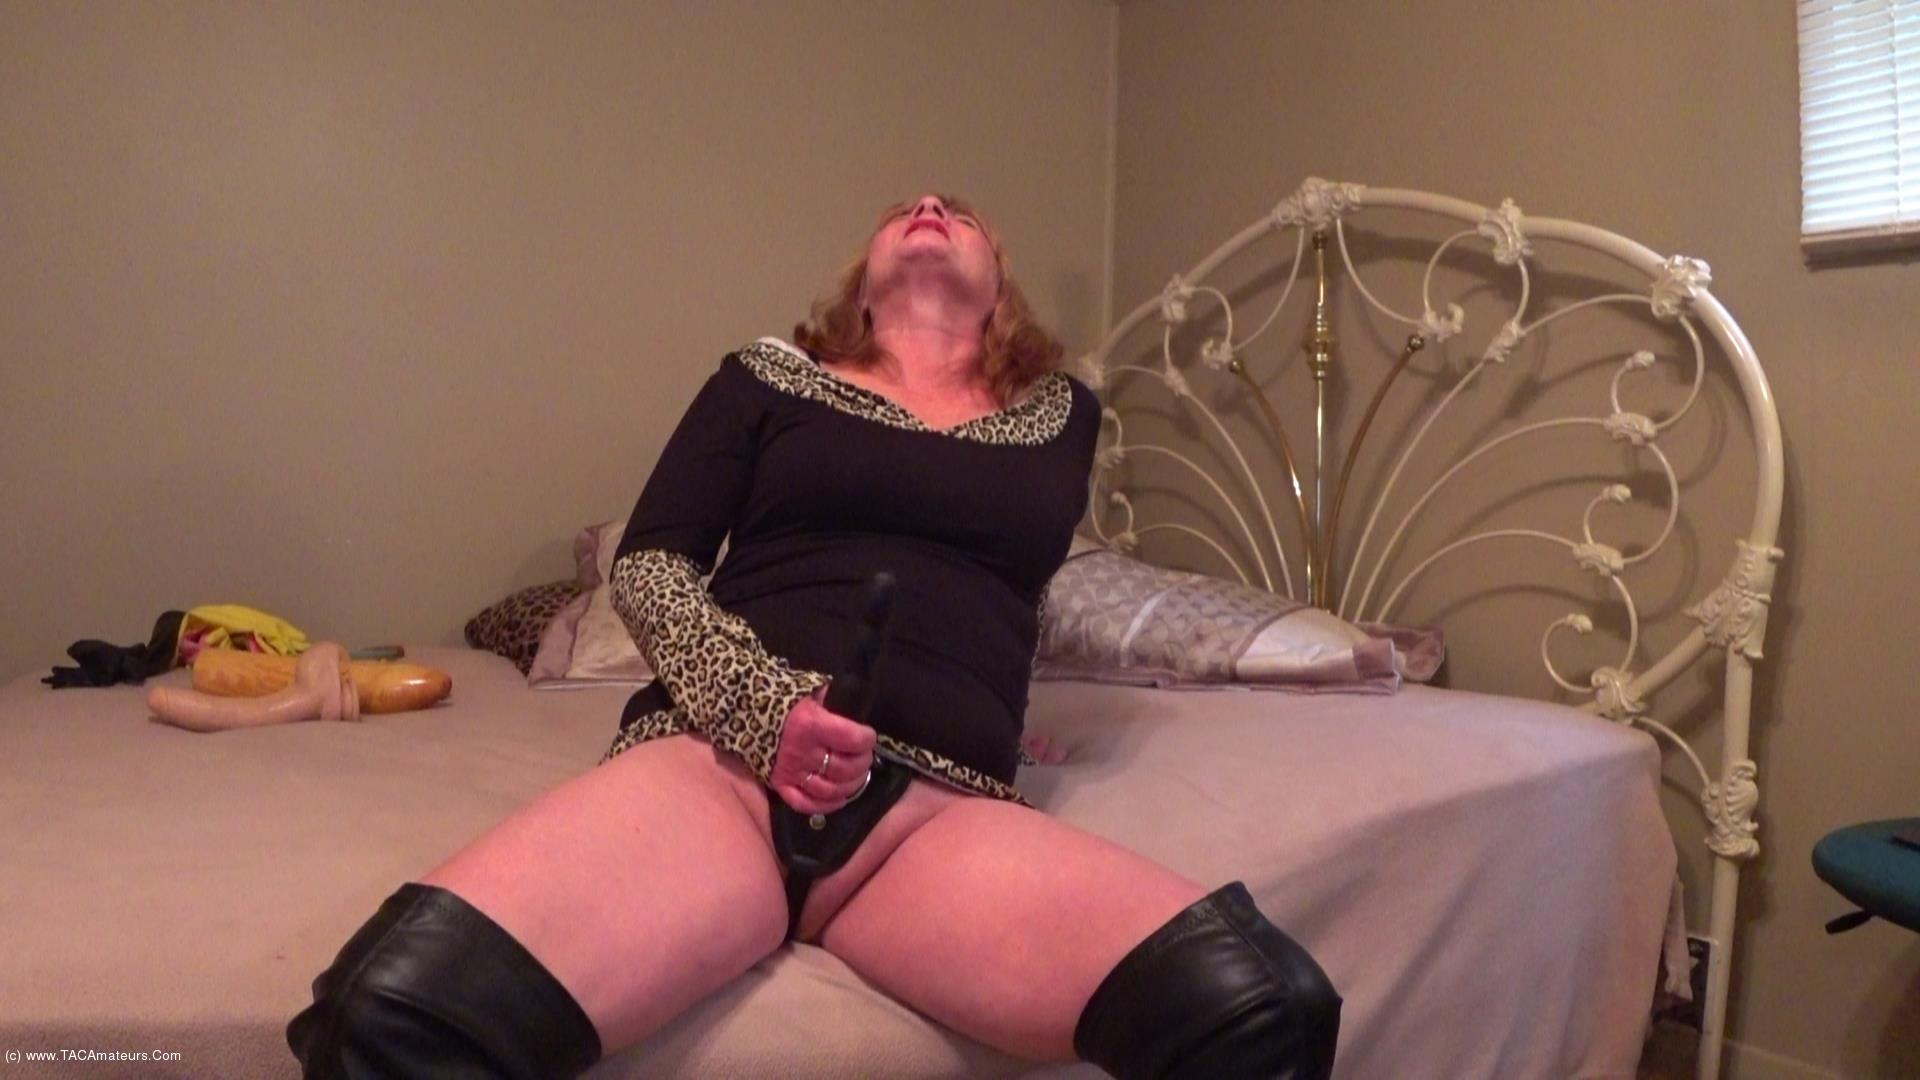 CougarBabeJolee - Sissy Boy Wants His Man Cunt Fucked scene 3